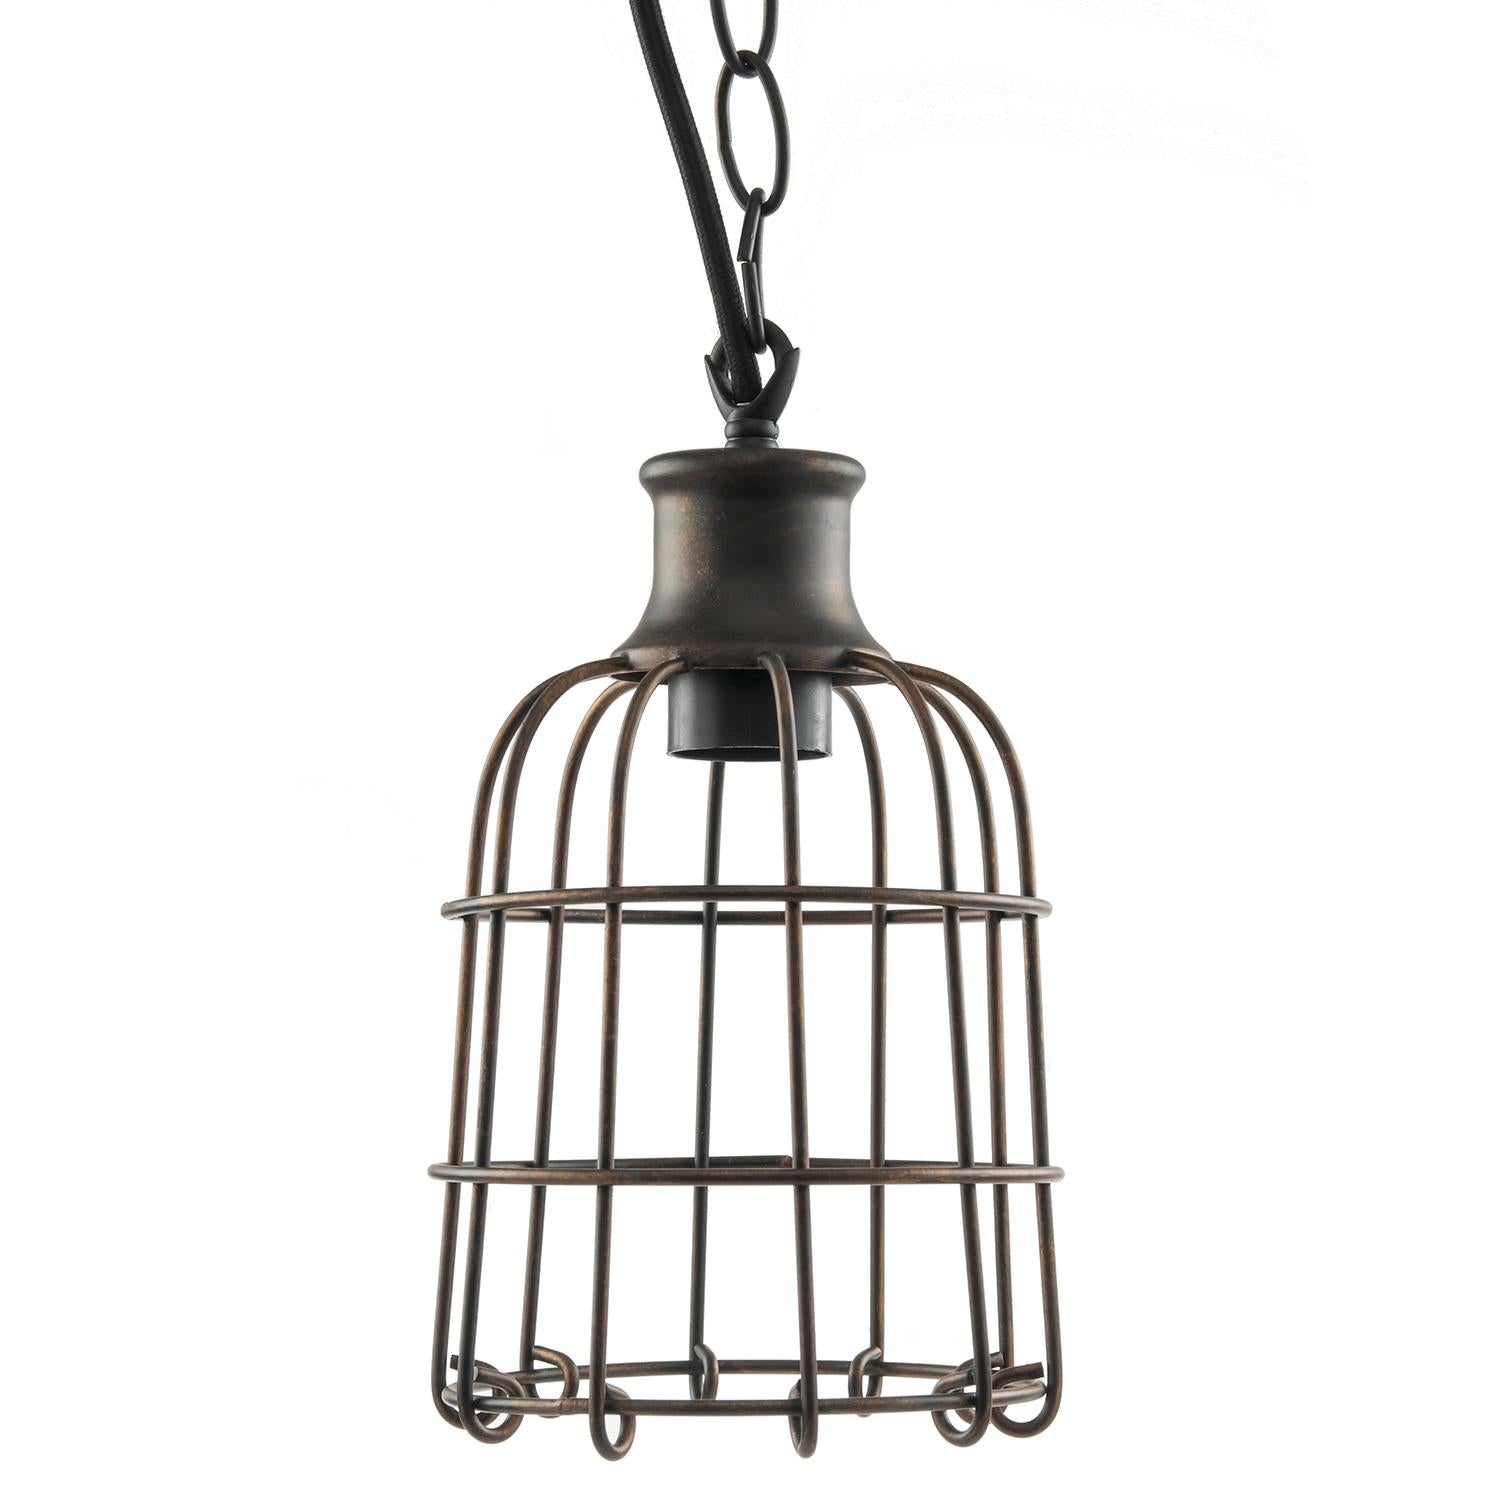 SUNLITE 07011-SU E26 Antique Style Iron Rust Pendant Light Fixture